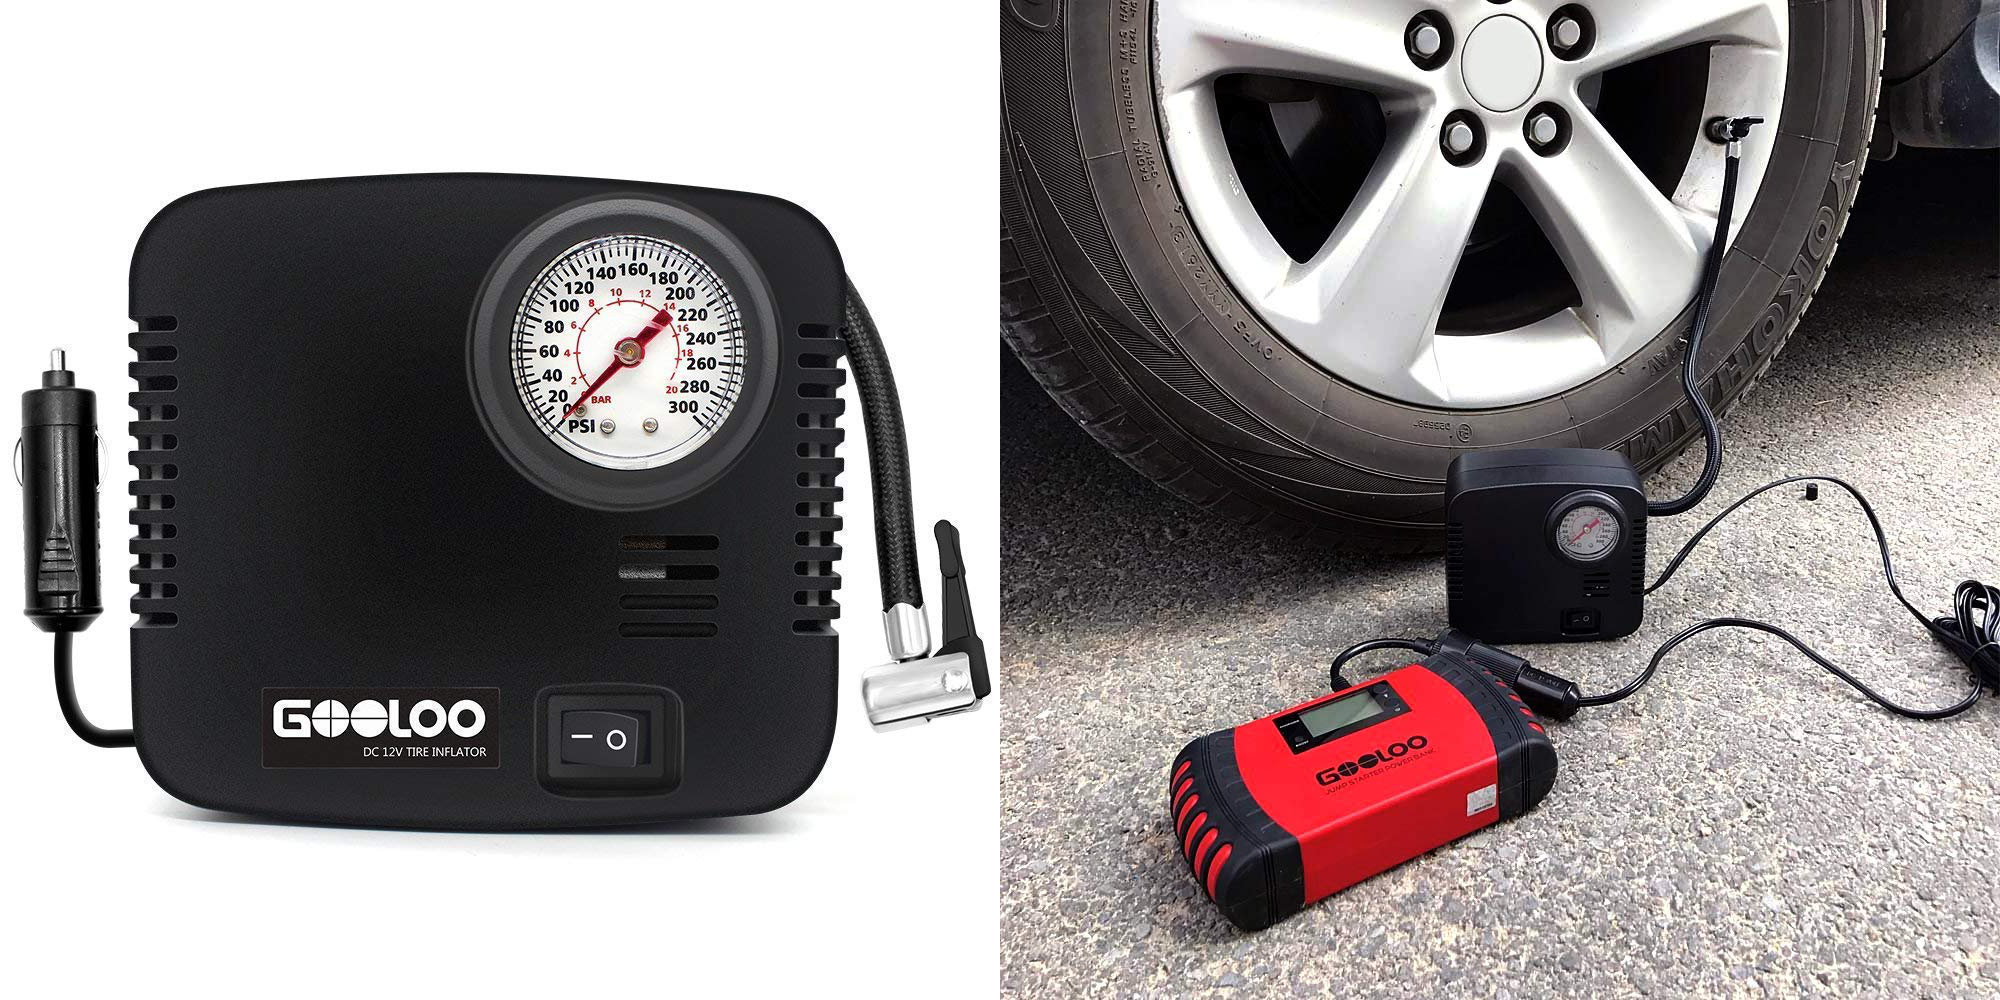 Keep your tires properly inflated w/ this portable air compressor for better gas mileage: $10 (35% off)